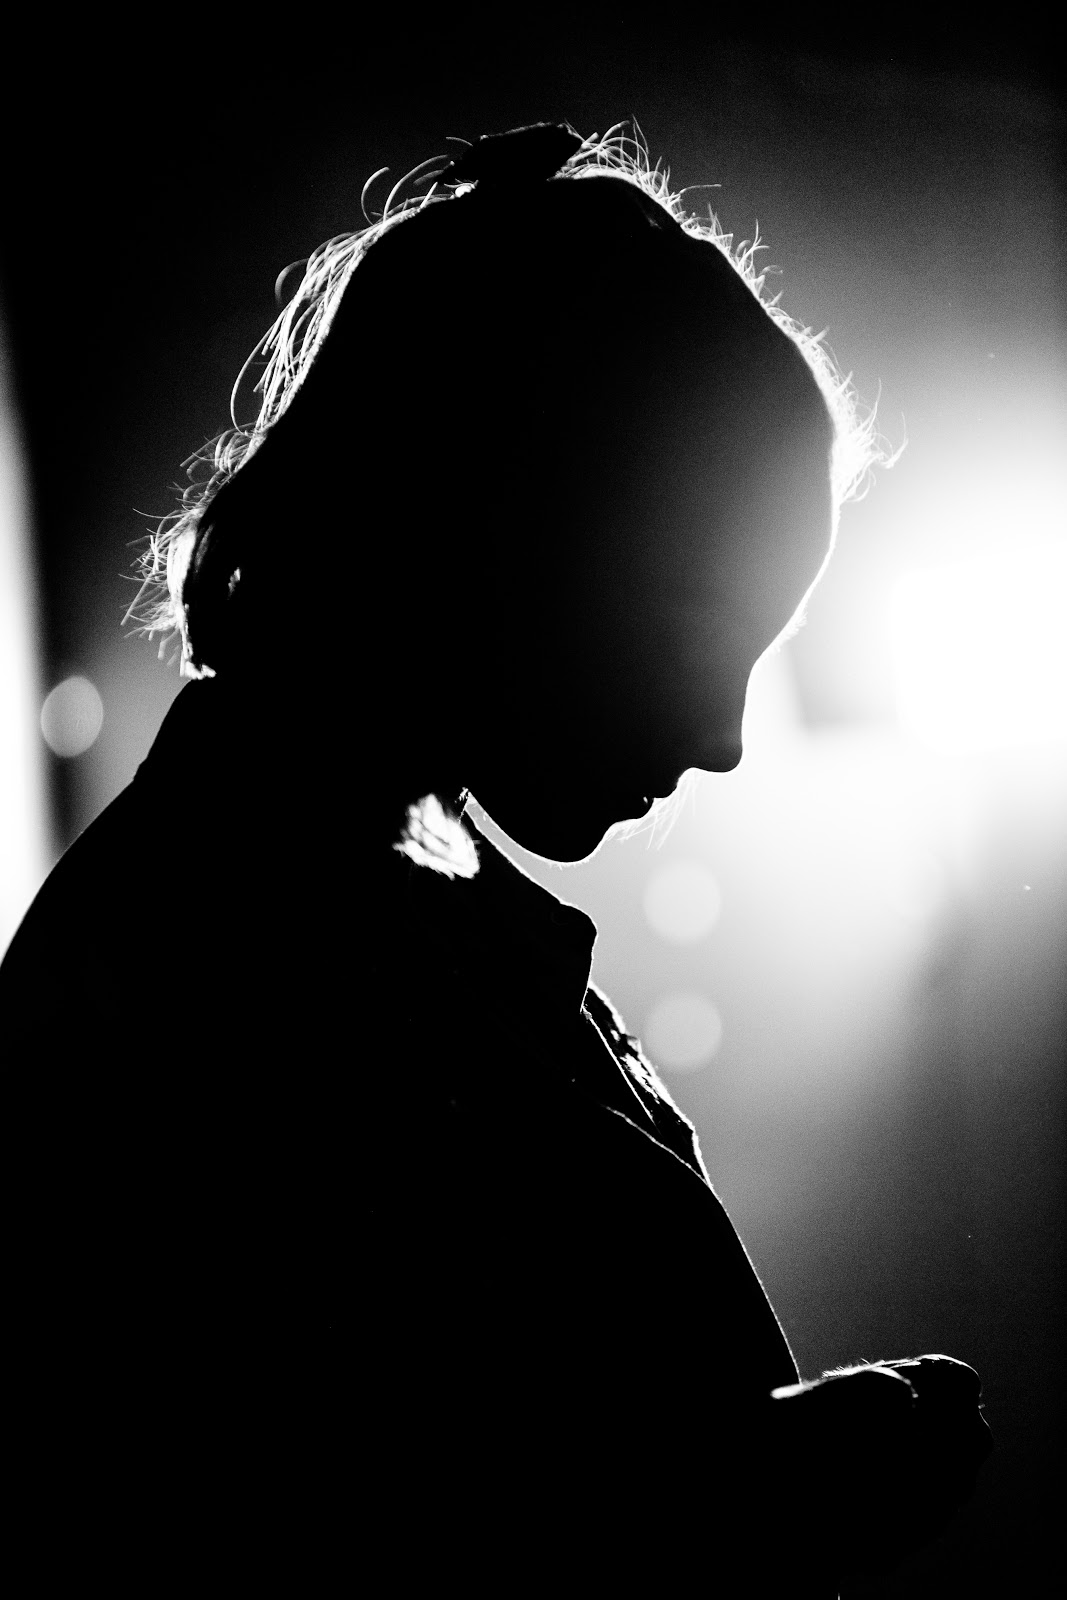 Woman backlit by stage lights